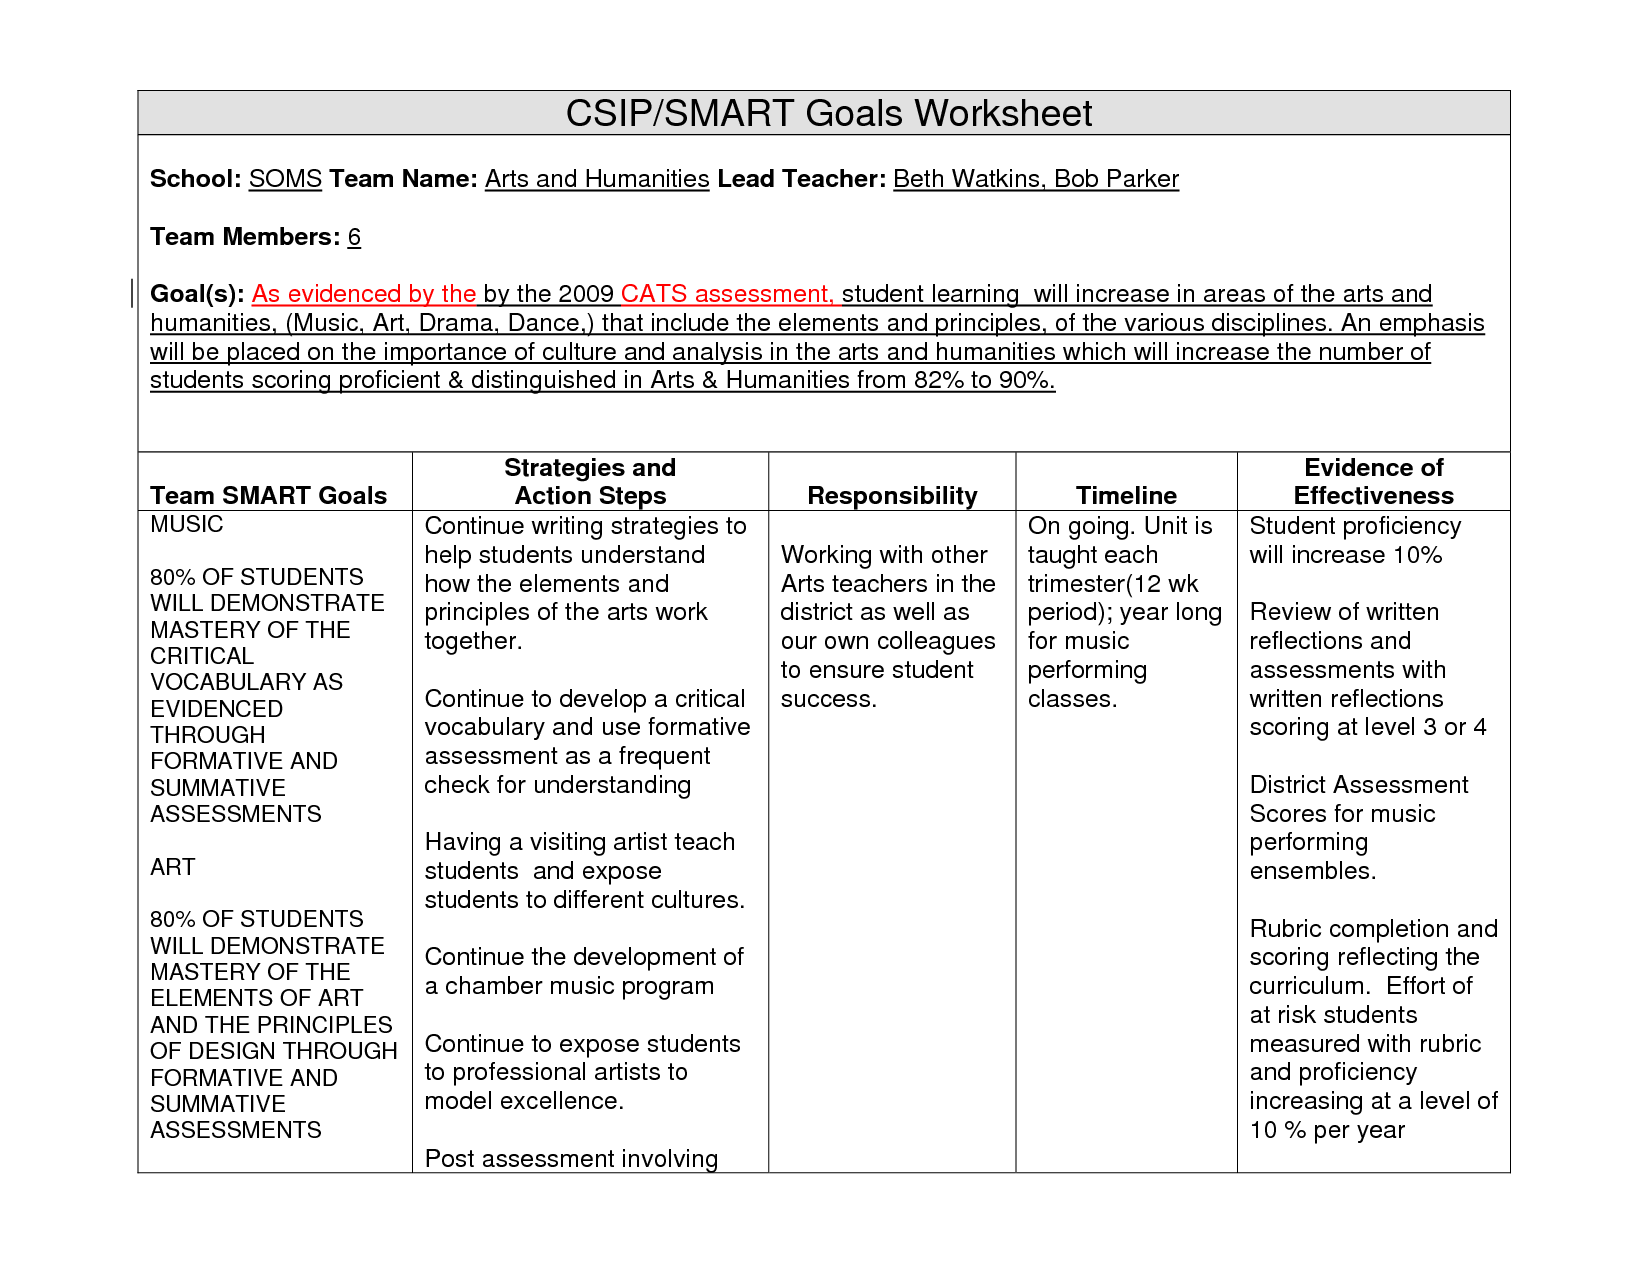 Financial Literacy Worksheets for High School and Examples Of Student Smart Goals for Art Education Smart Goals